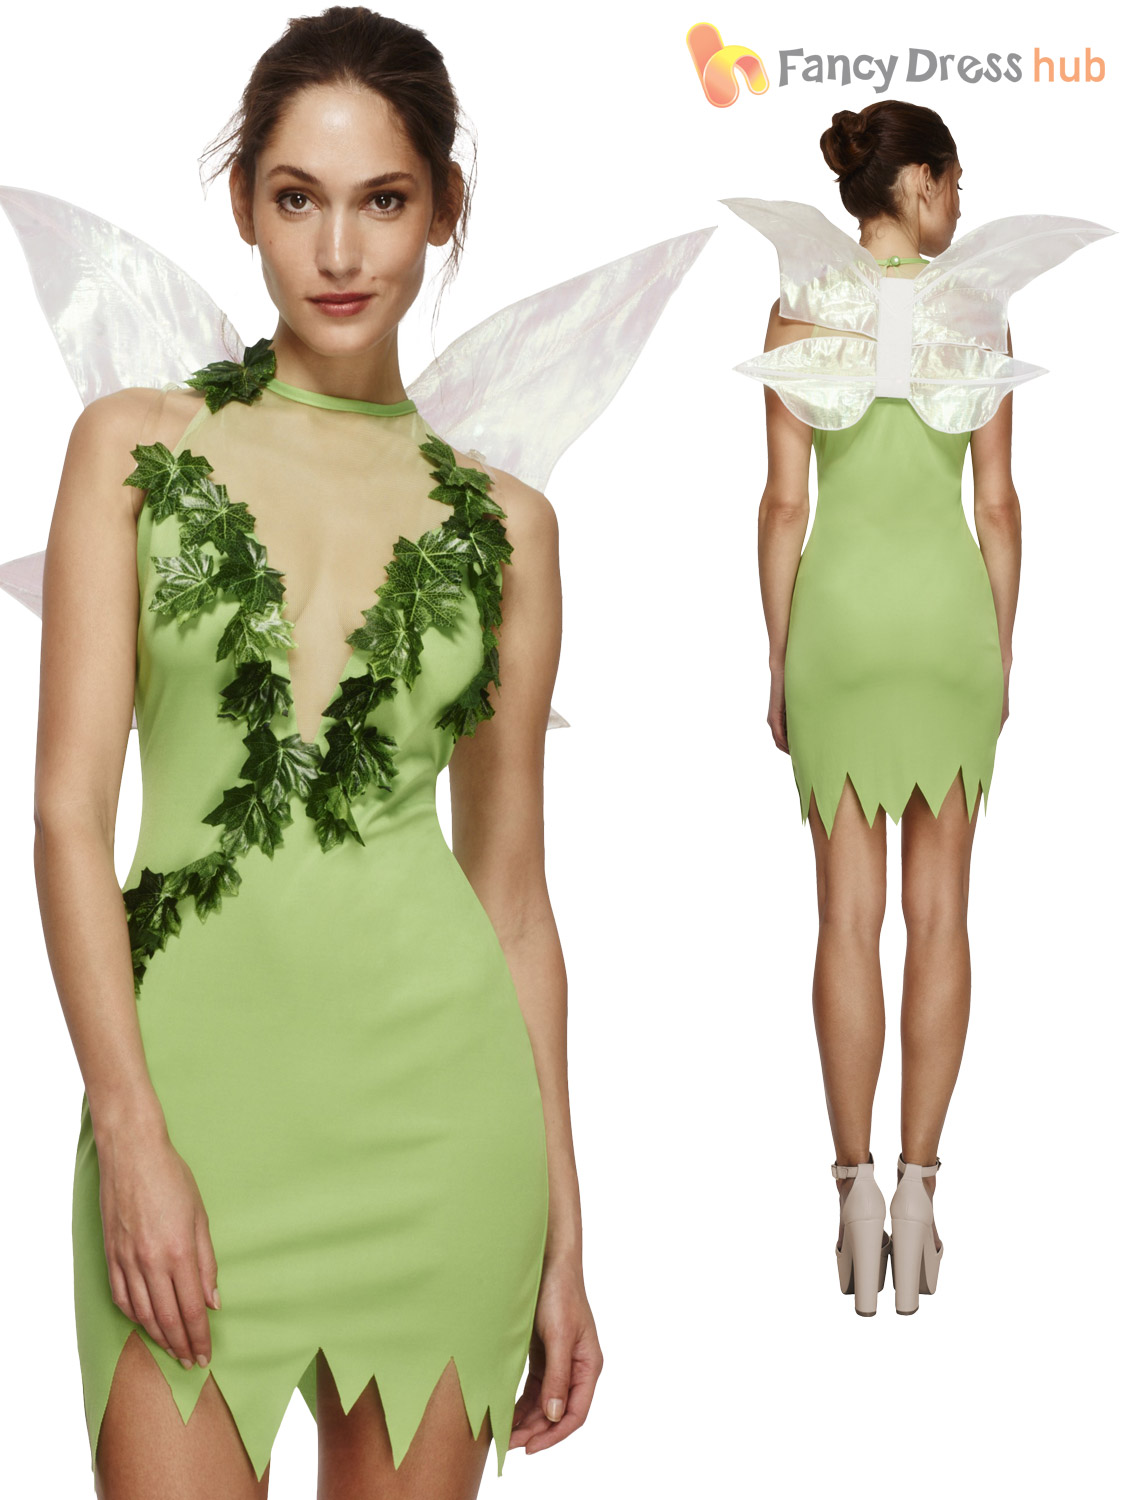 FDS43480_ebay adult magical fairy tinker size 8 18 womens ladies fancy dress,Ebay Womens Clothing Size 8